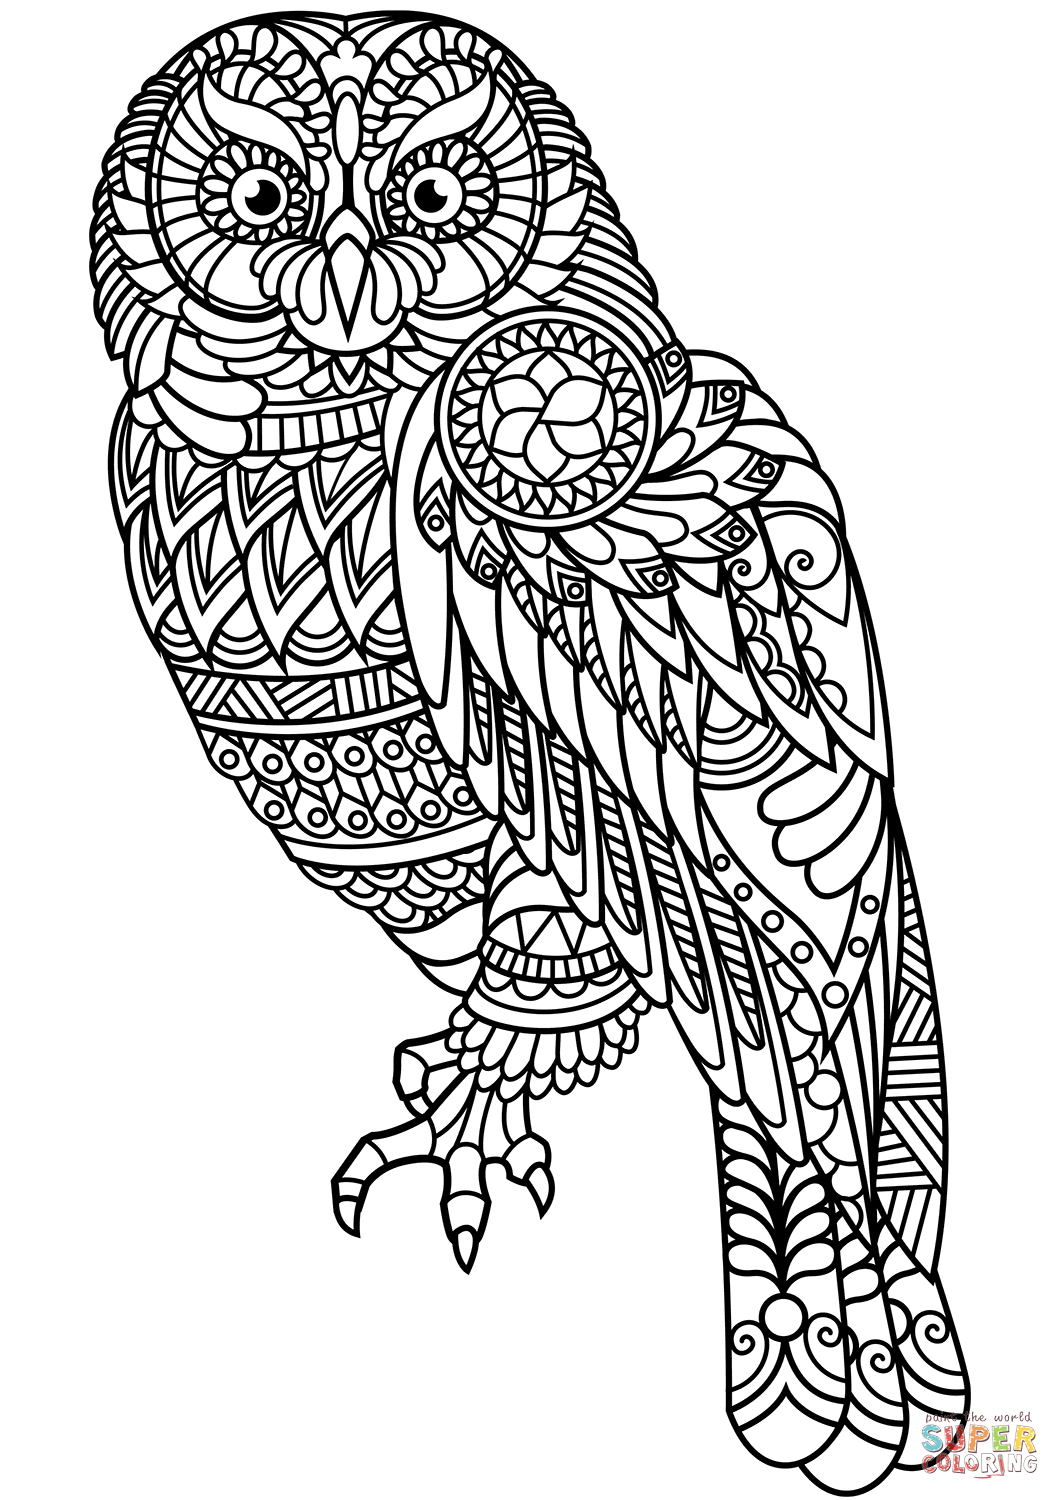 coloring pages zentangle zentangle inspired golden spiral coloring page instant pdf zentangle coloring pages